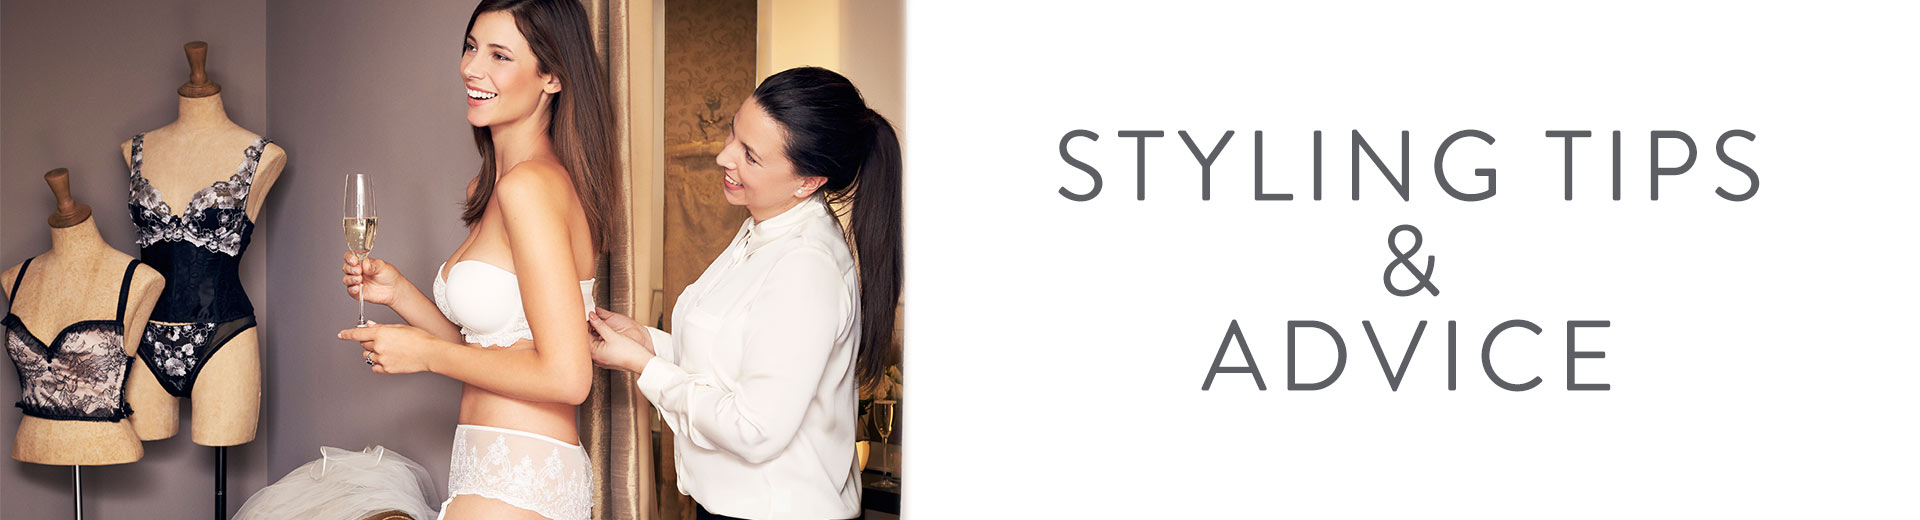 Styling tips & advice